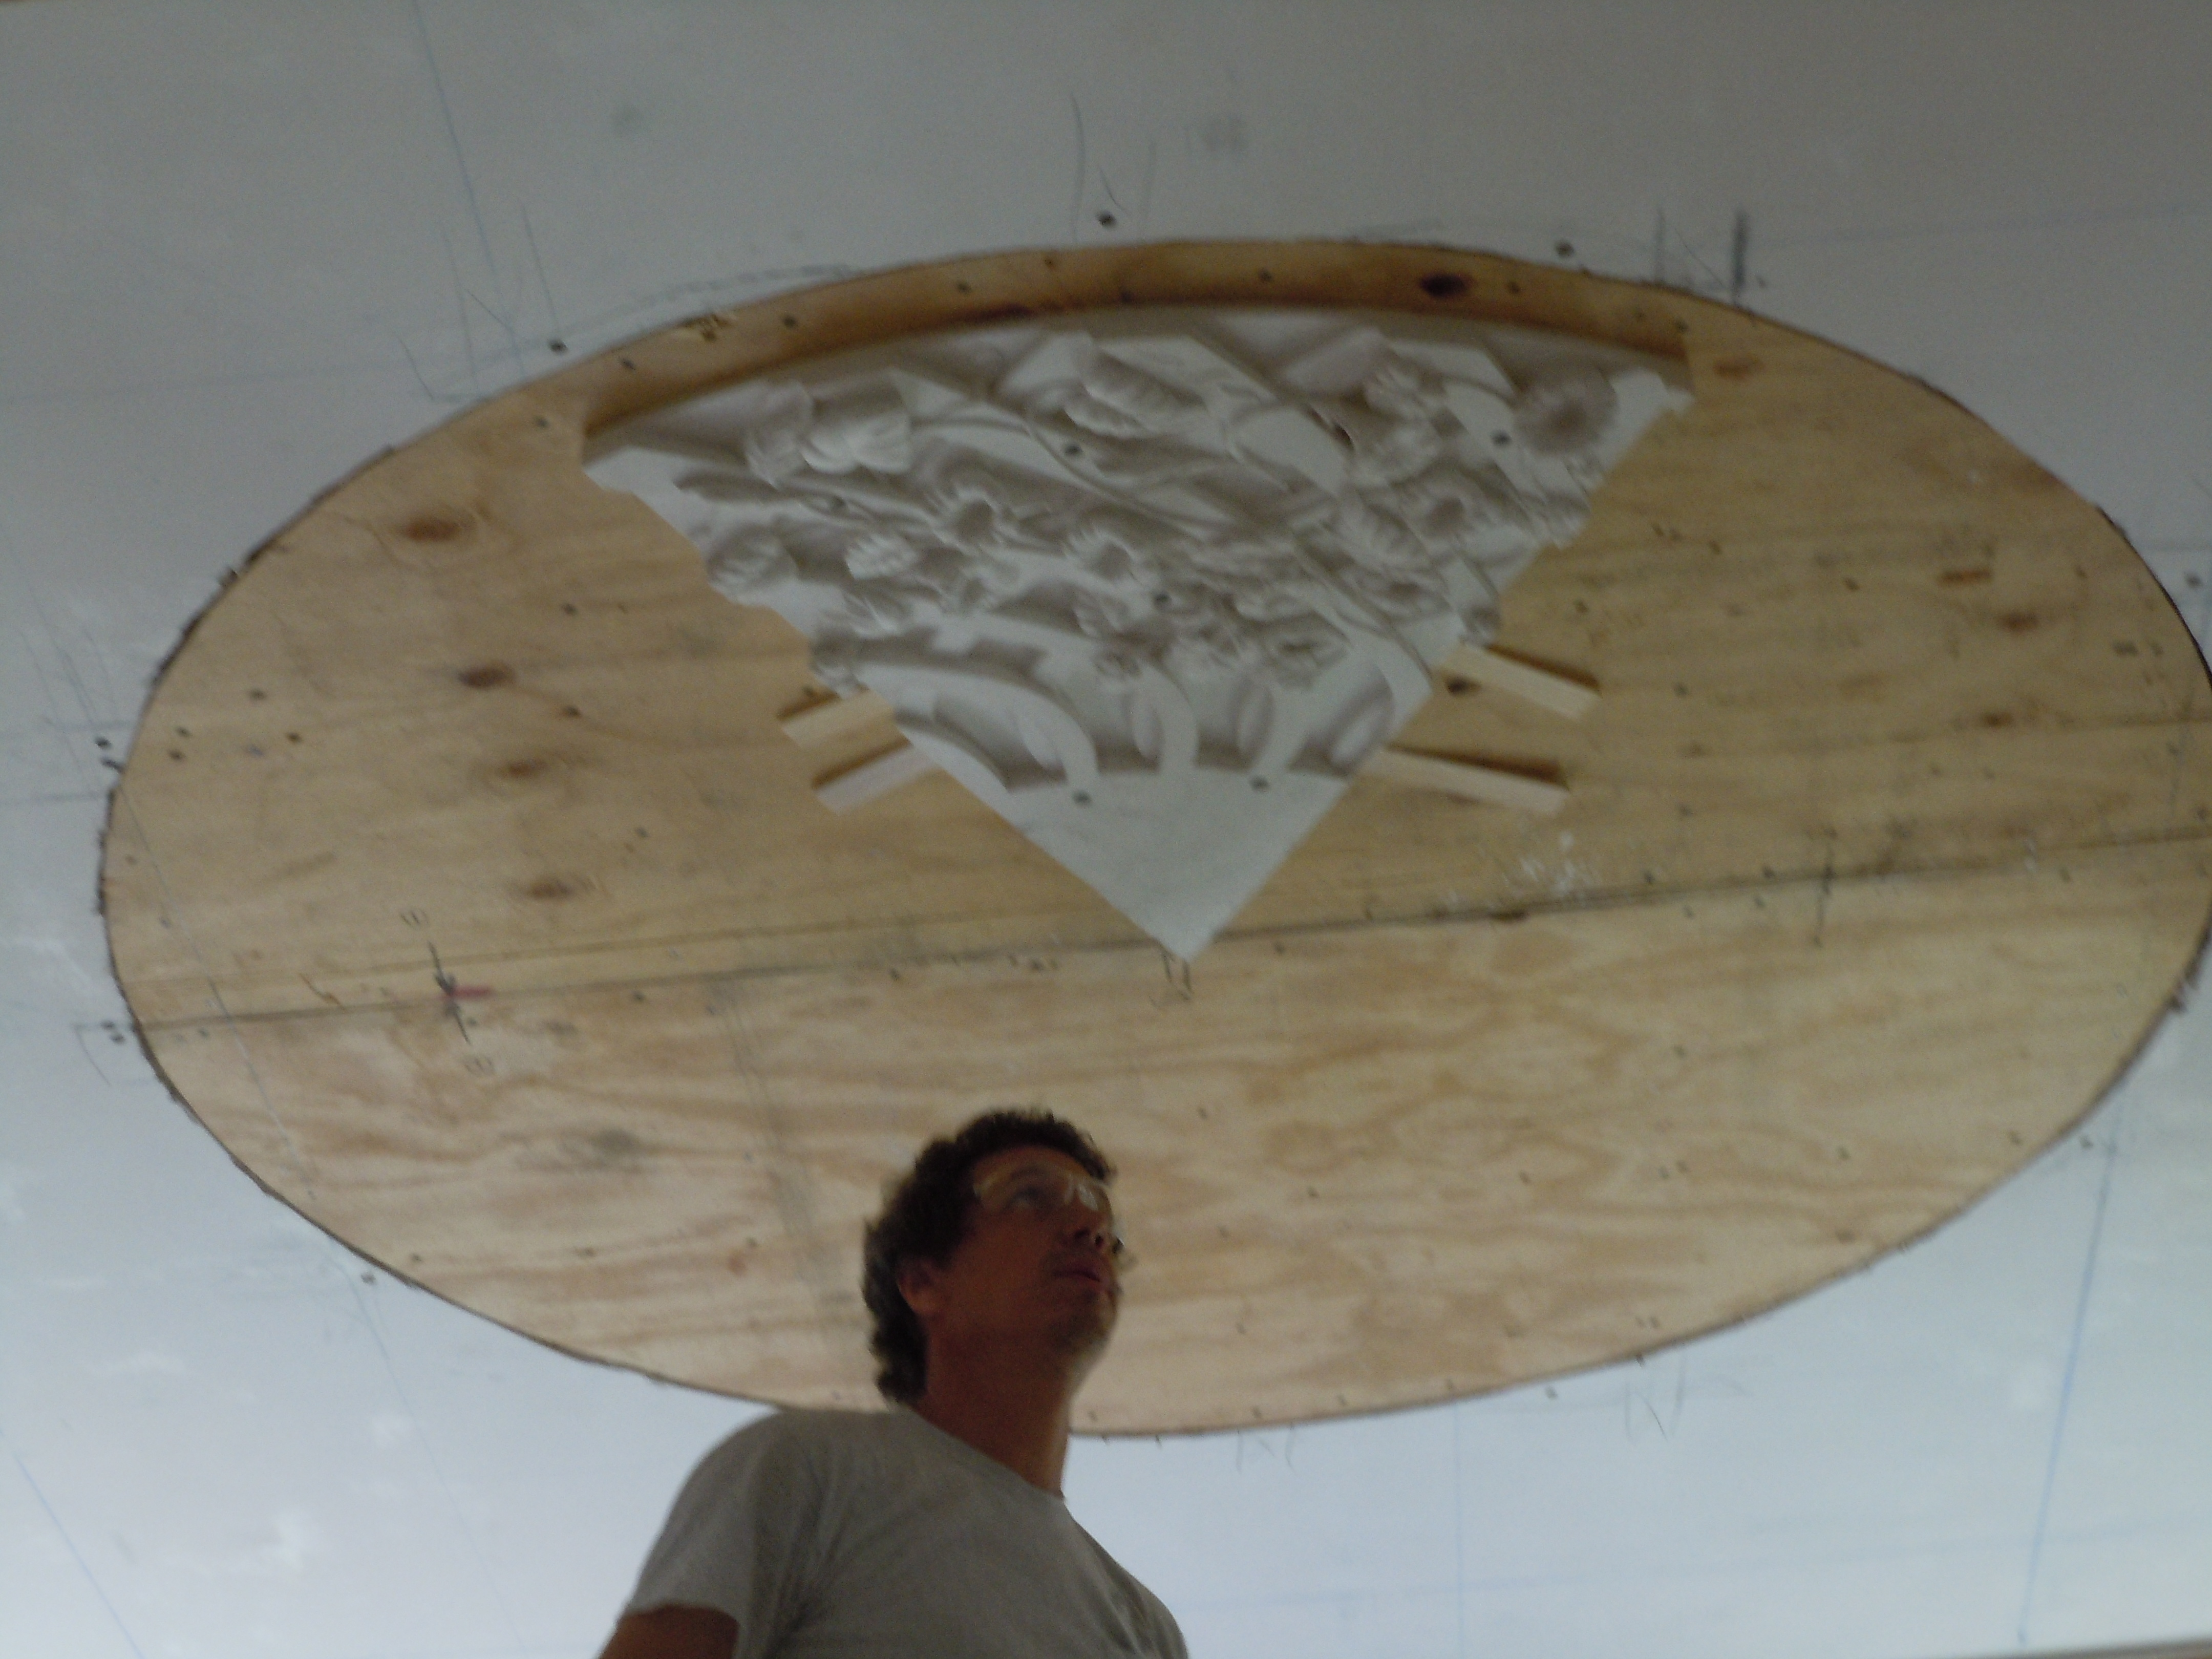 Greg Jacobs of Land mark Preservation working on securing the heavy plaster medallion in Glen Mary's front room- July 2018